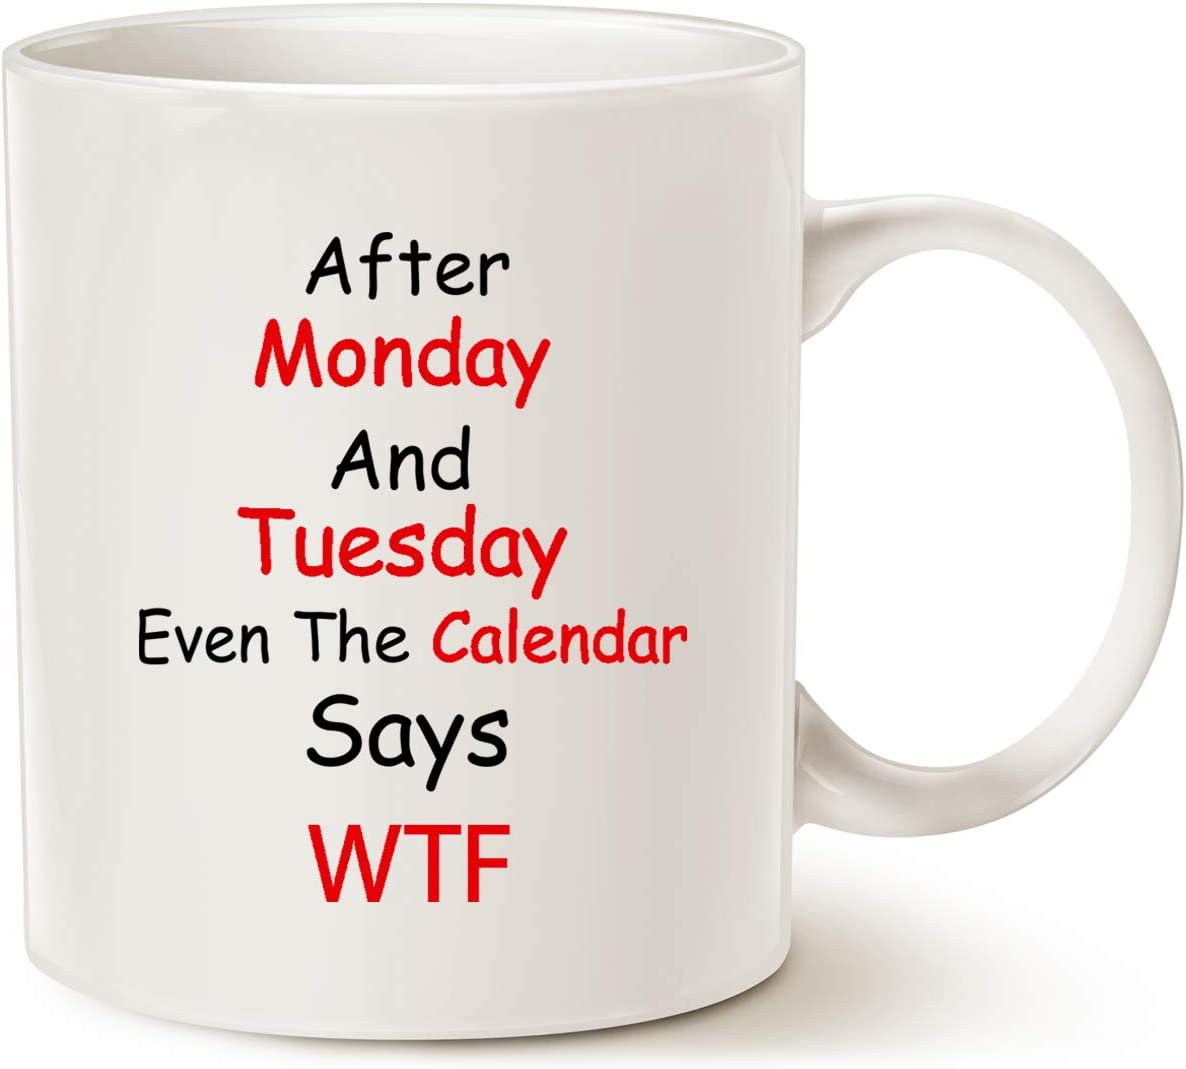 MAUAG Funny Quote Coffee Mugs, Monday, Tuesday, Best Gifts for Office Co-worker, Working Women Cup, White 11 Oz